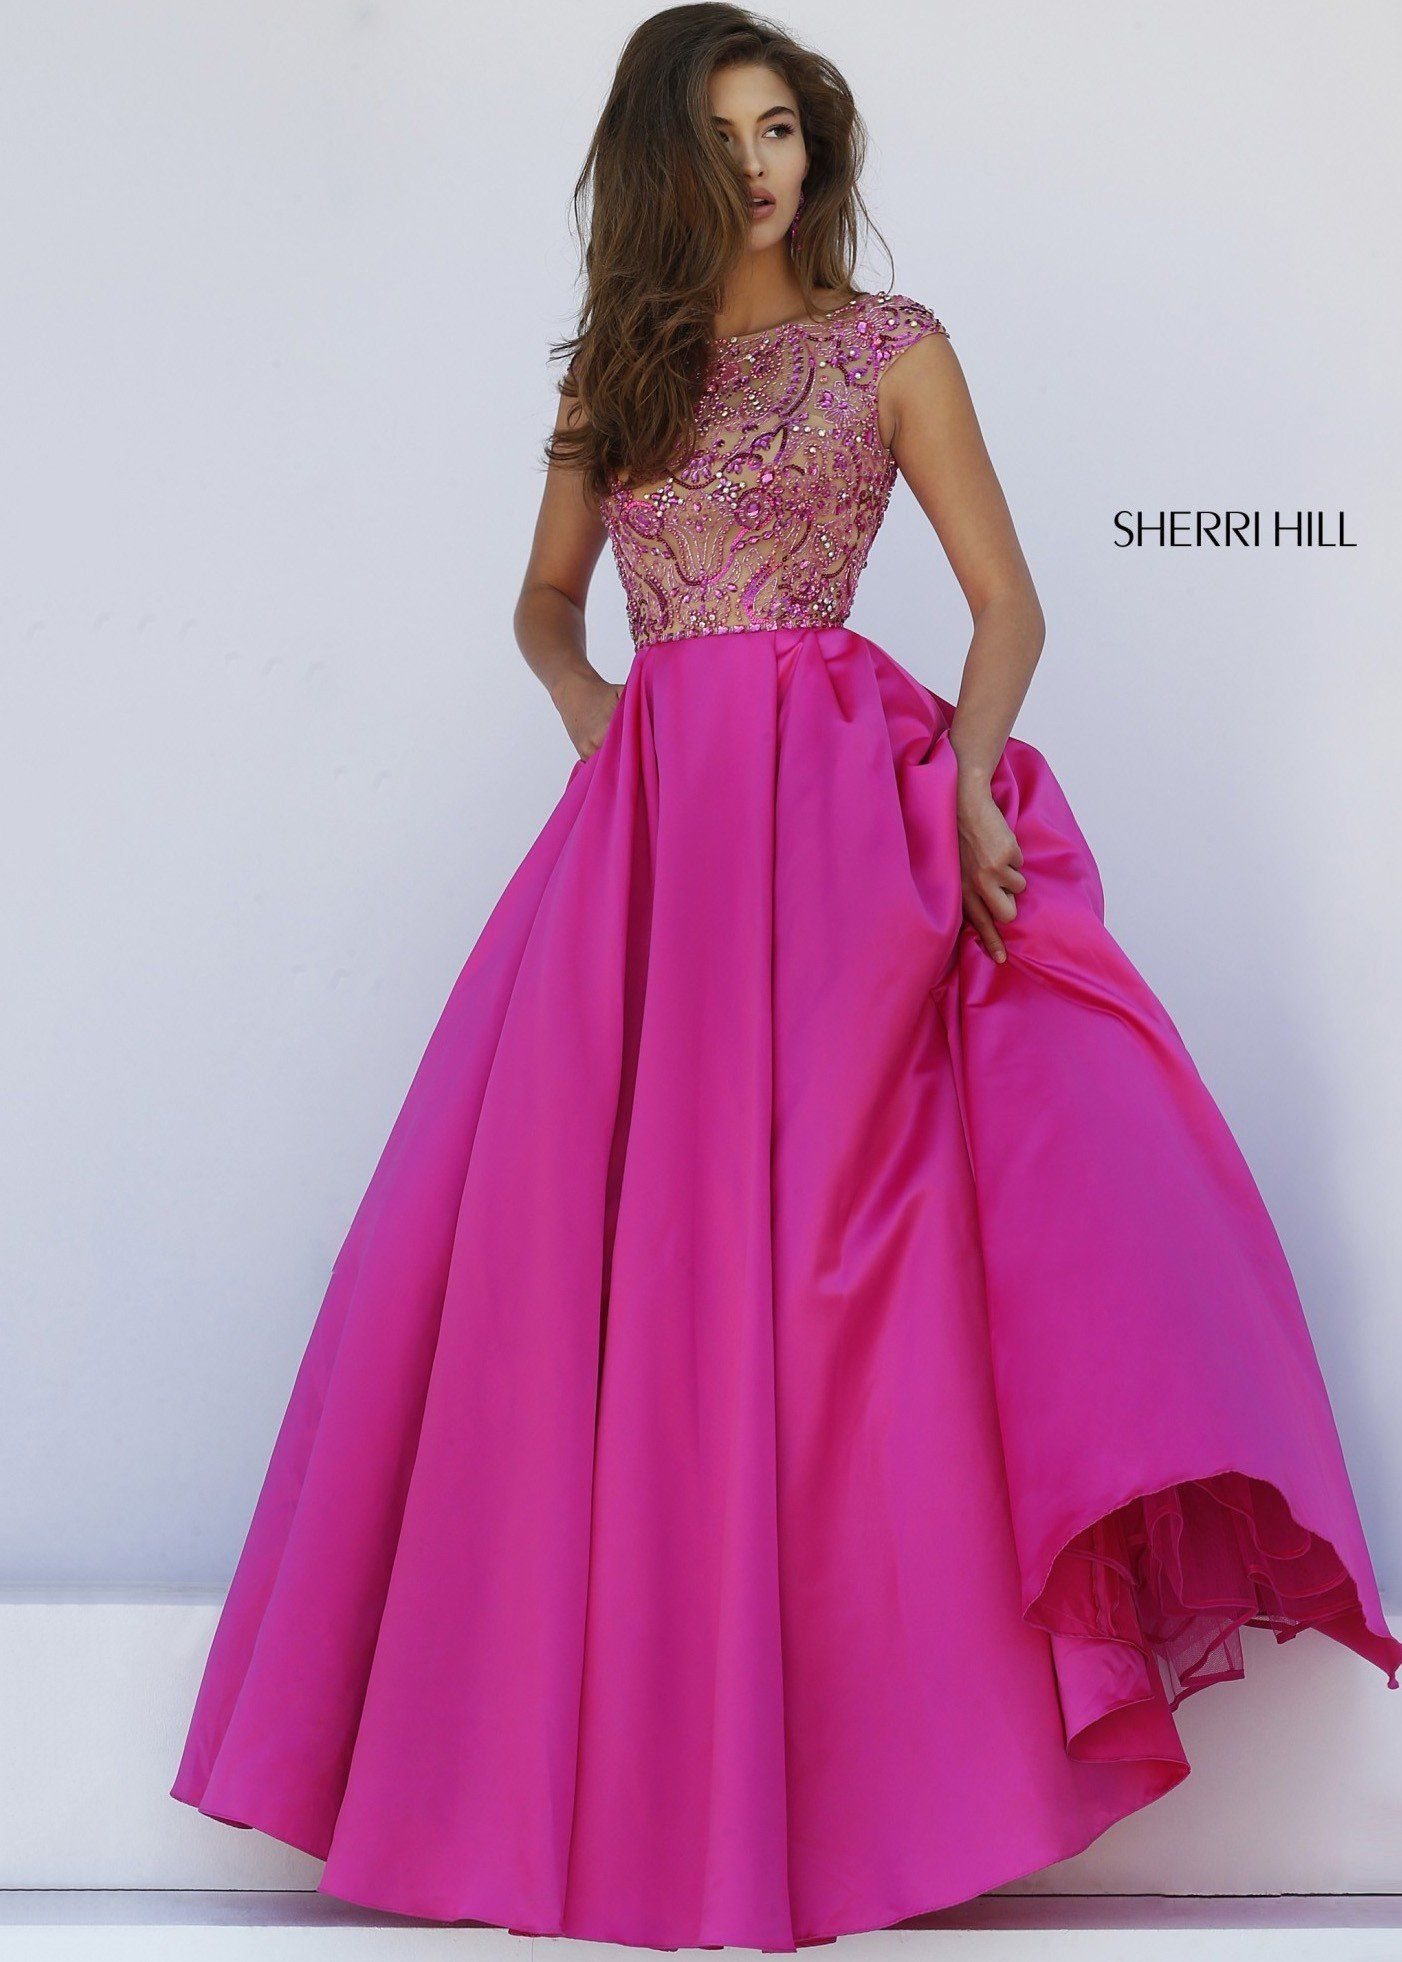 2a7f81133f5 Feel like a princess in this fabulous ball gown from Sherri Hill. The  stunning bodice has an illusion neckline and cap sleeves and is encrusted  with sparkly ...